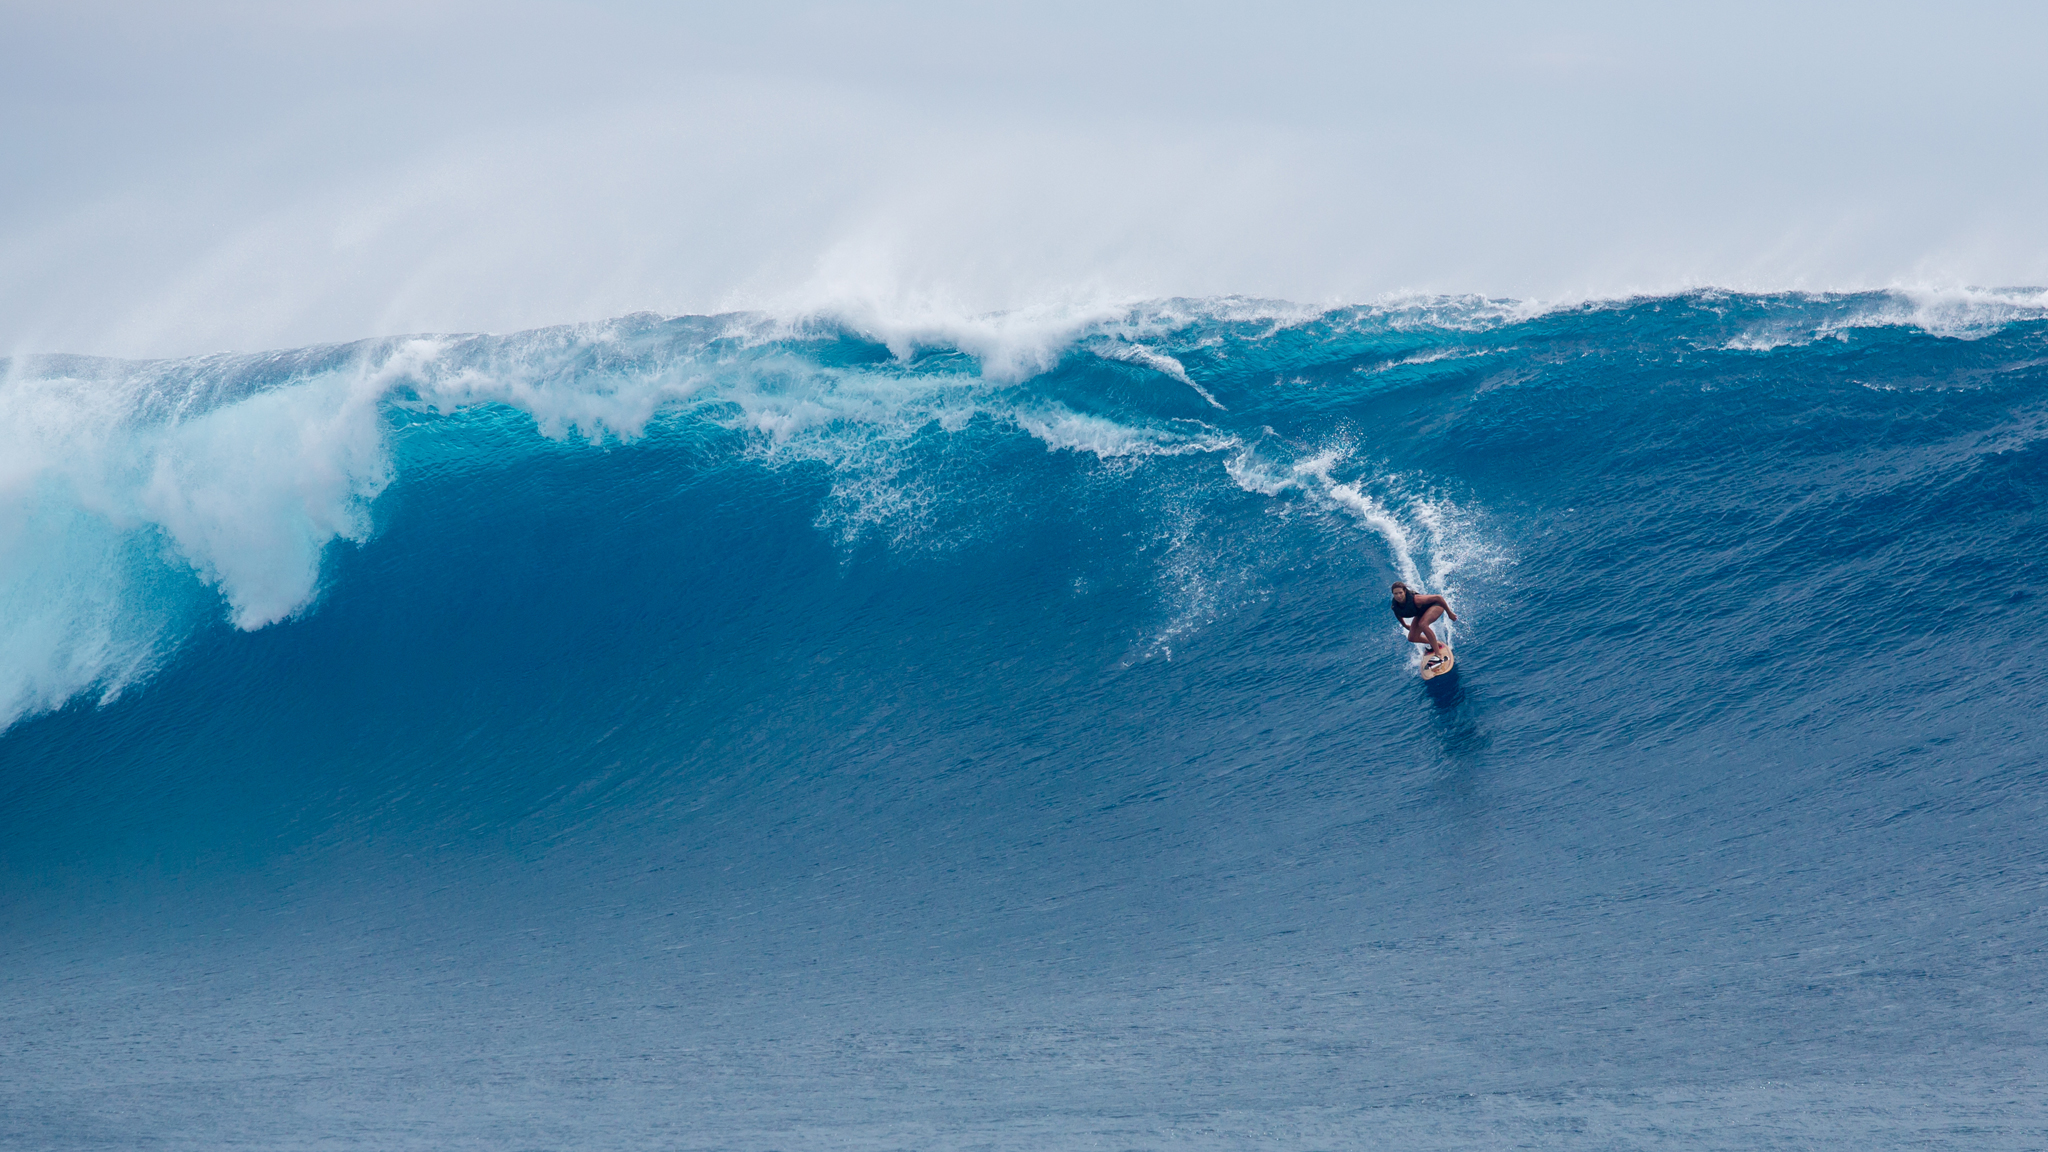 Julia Manucso is better known for being the most-decorated female American alpine skier in Olympic history than  riding the wild surf. But when she's not racing, she's giddy for any kind of water -- frozen or salt. Eyeing a storm deep in the Southern Ocean, she recently tracked a massive swell to Fiji, where she tackled some giant surf at Cloudbreak. Attracting big-wave riders such as Big Wave Hellmen star Ryan Hipwood and Dave Rastovich, she mixed it up in some serious conditions with some major surfing talent and came away riding some of the biggest waves of her life.